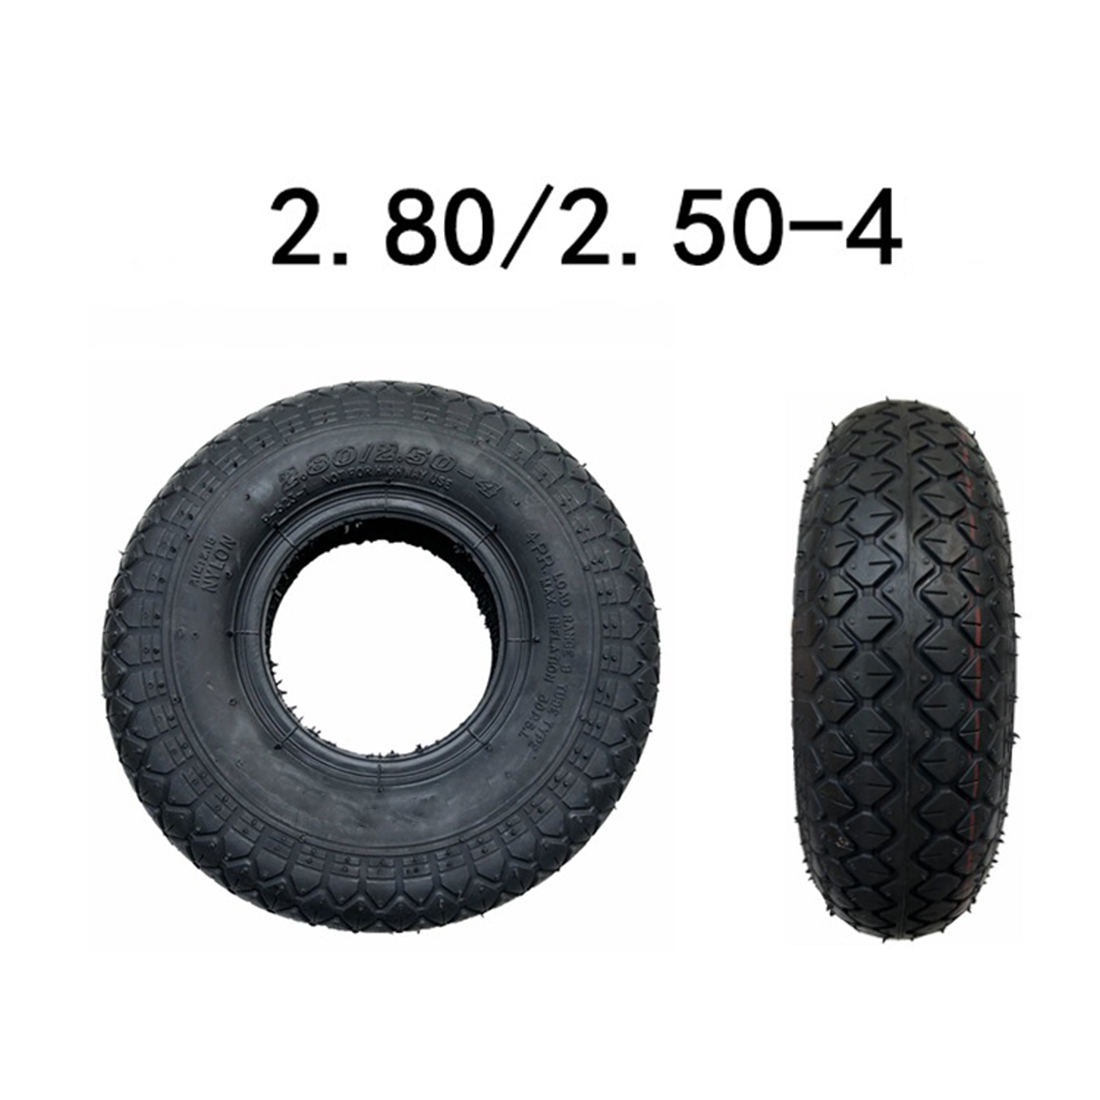 9 Inch <font><b>2.80/2.50</b></font>-<font><b>4</b></font> Thick Tire / Inner Tube For Elderly Electric Scooter High Quality Solid Tire Anti-puncture image